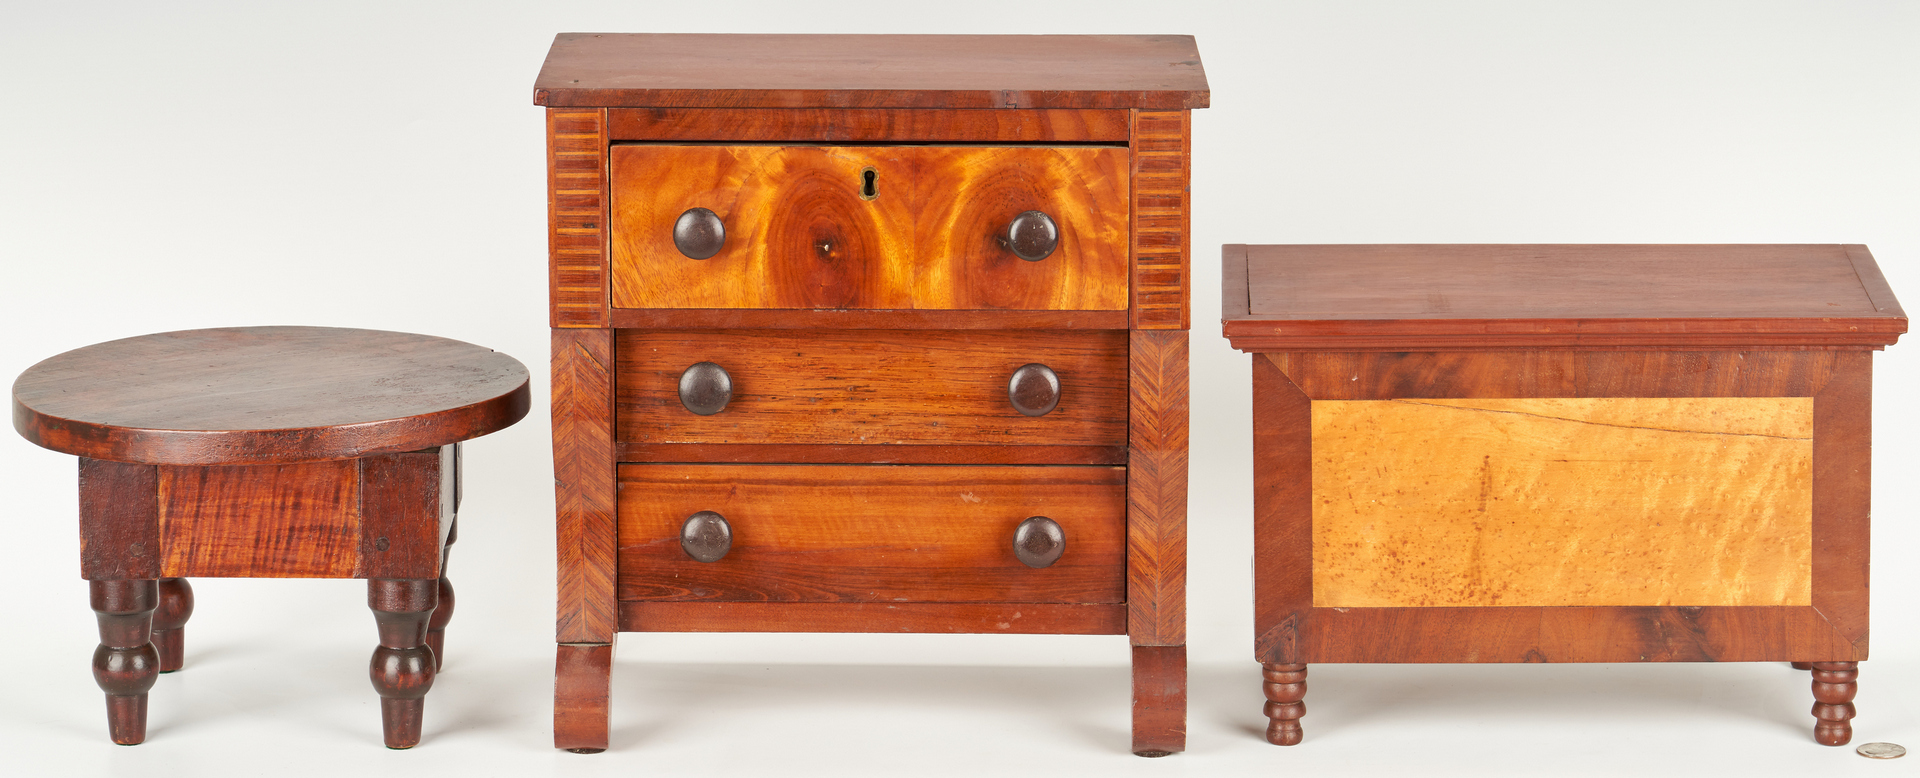 Lot 190: Miniature Chests and Table, incl. Birdseye and Tiger Maple